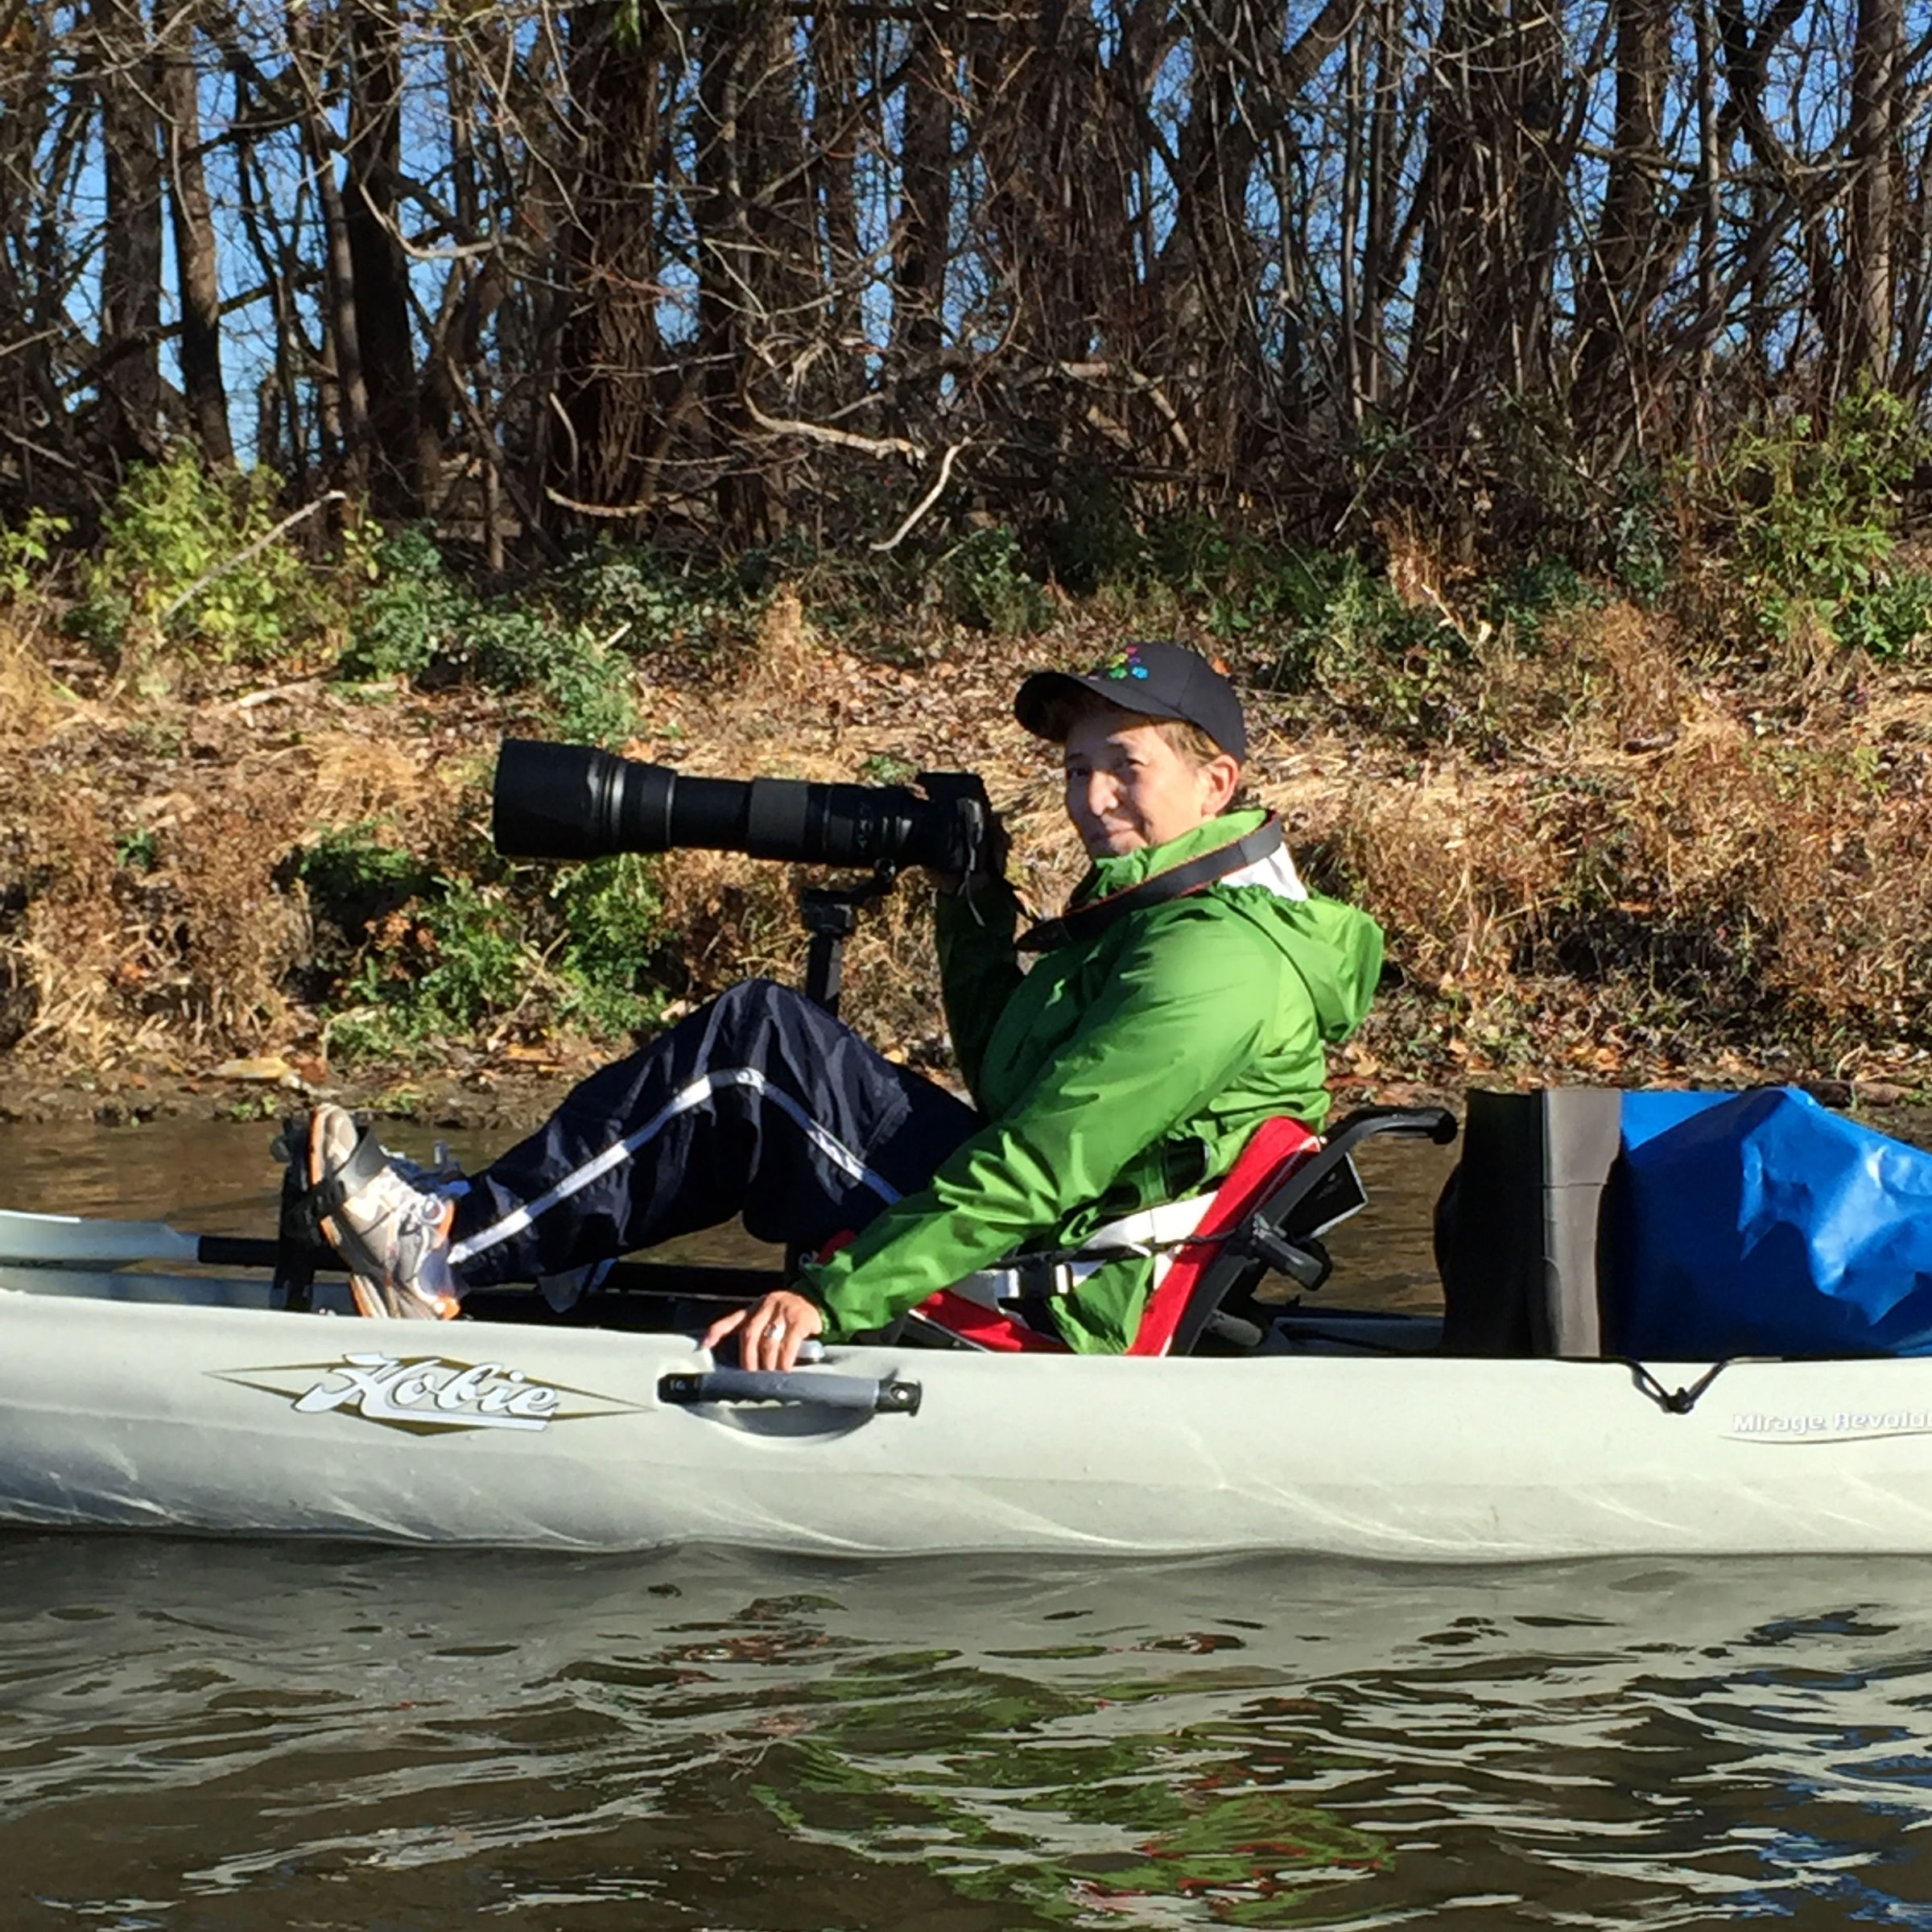 Bryand uses her kayak to paddle the lakes and creeks of Minnesota and watch birds. She's on a quest to photograph all 166 climate-threatened species in the state. Tess Rizzardi